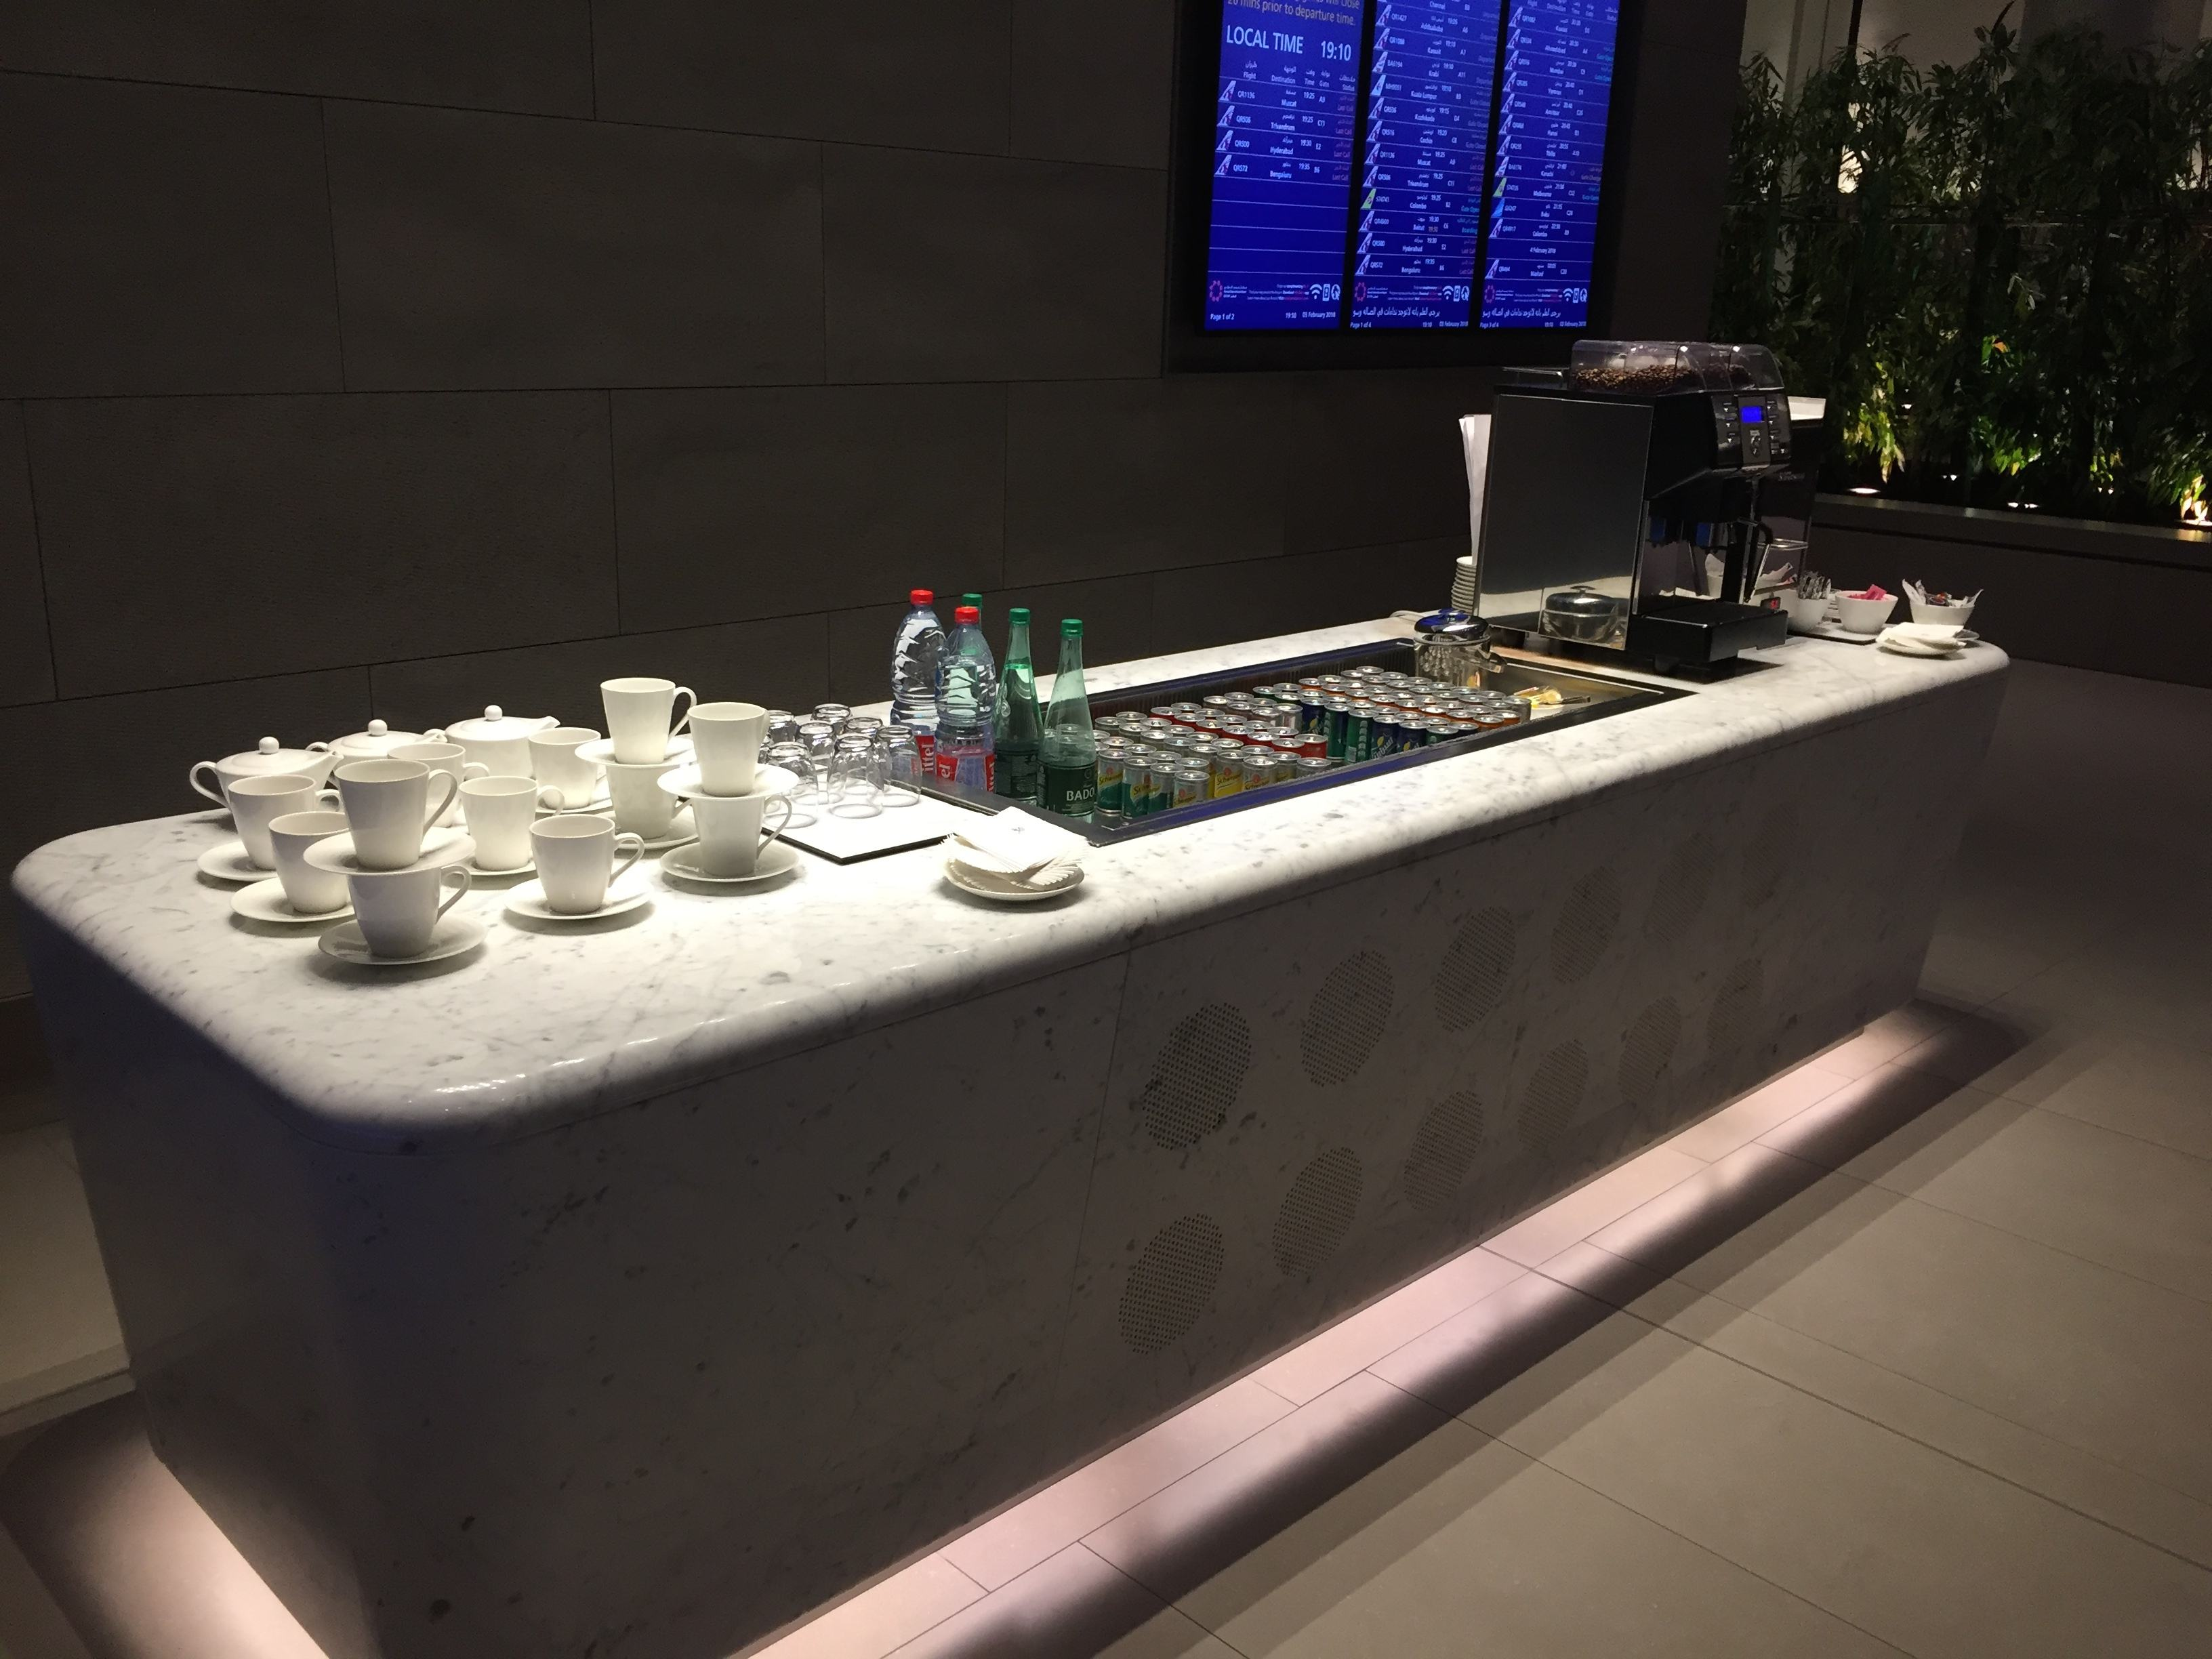 Drinks and coffee station at Al Mourjan lounge in DOH